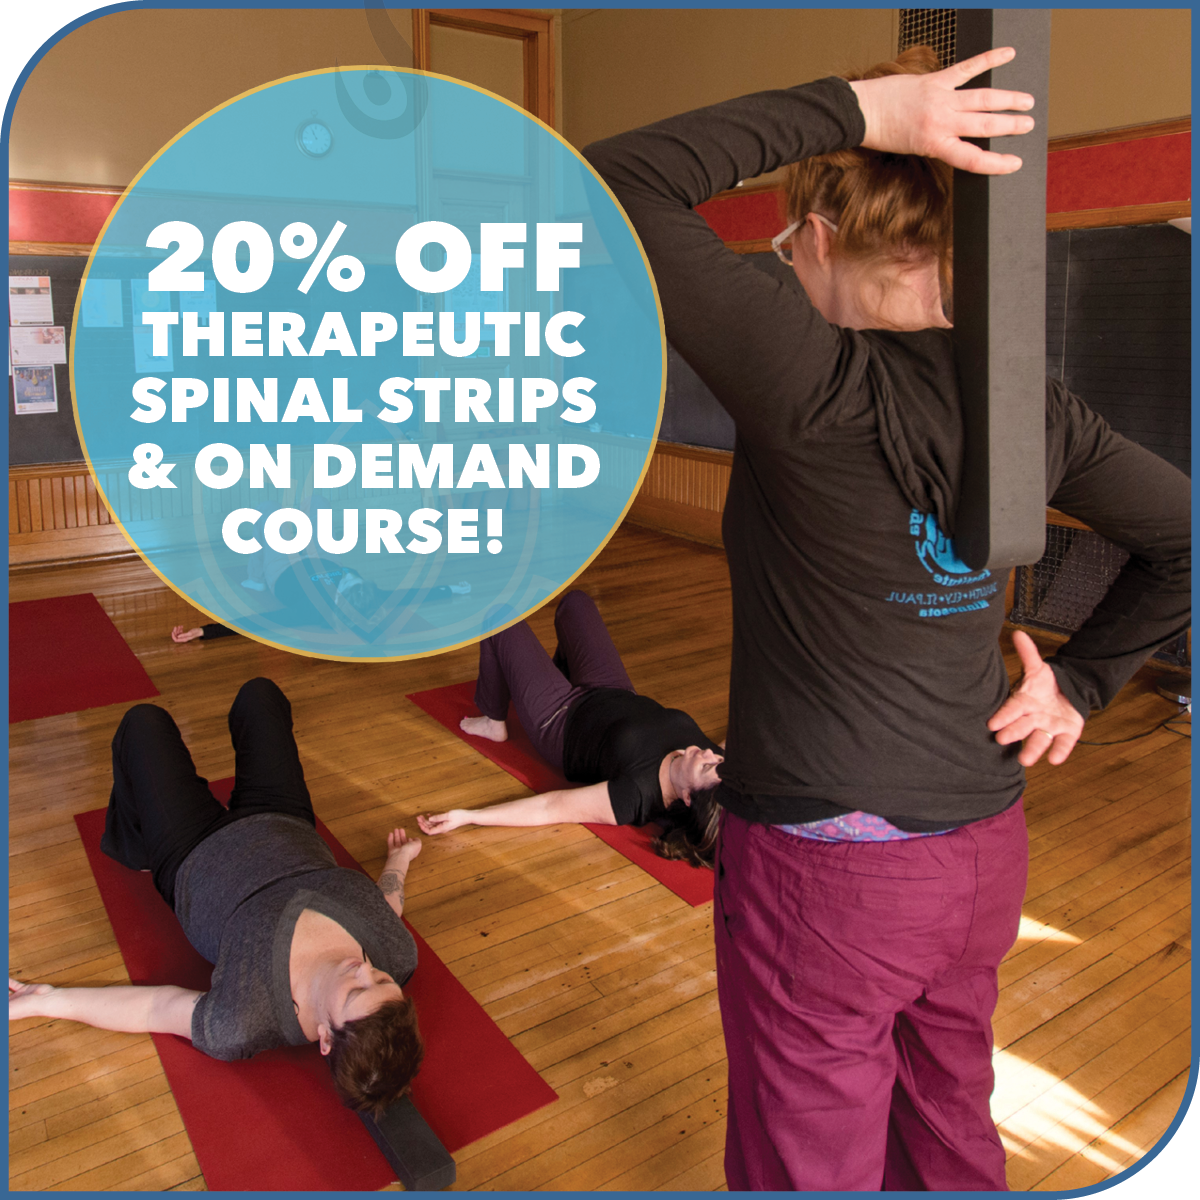 Yoga North ISYI 20% Off Therapeutic Spinal Strips and Course